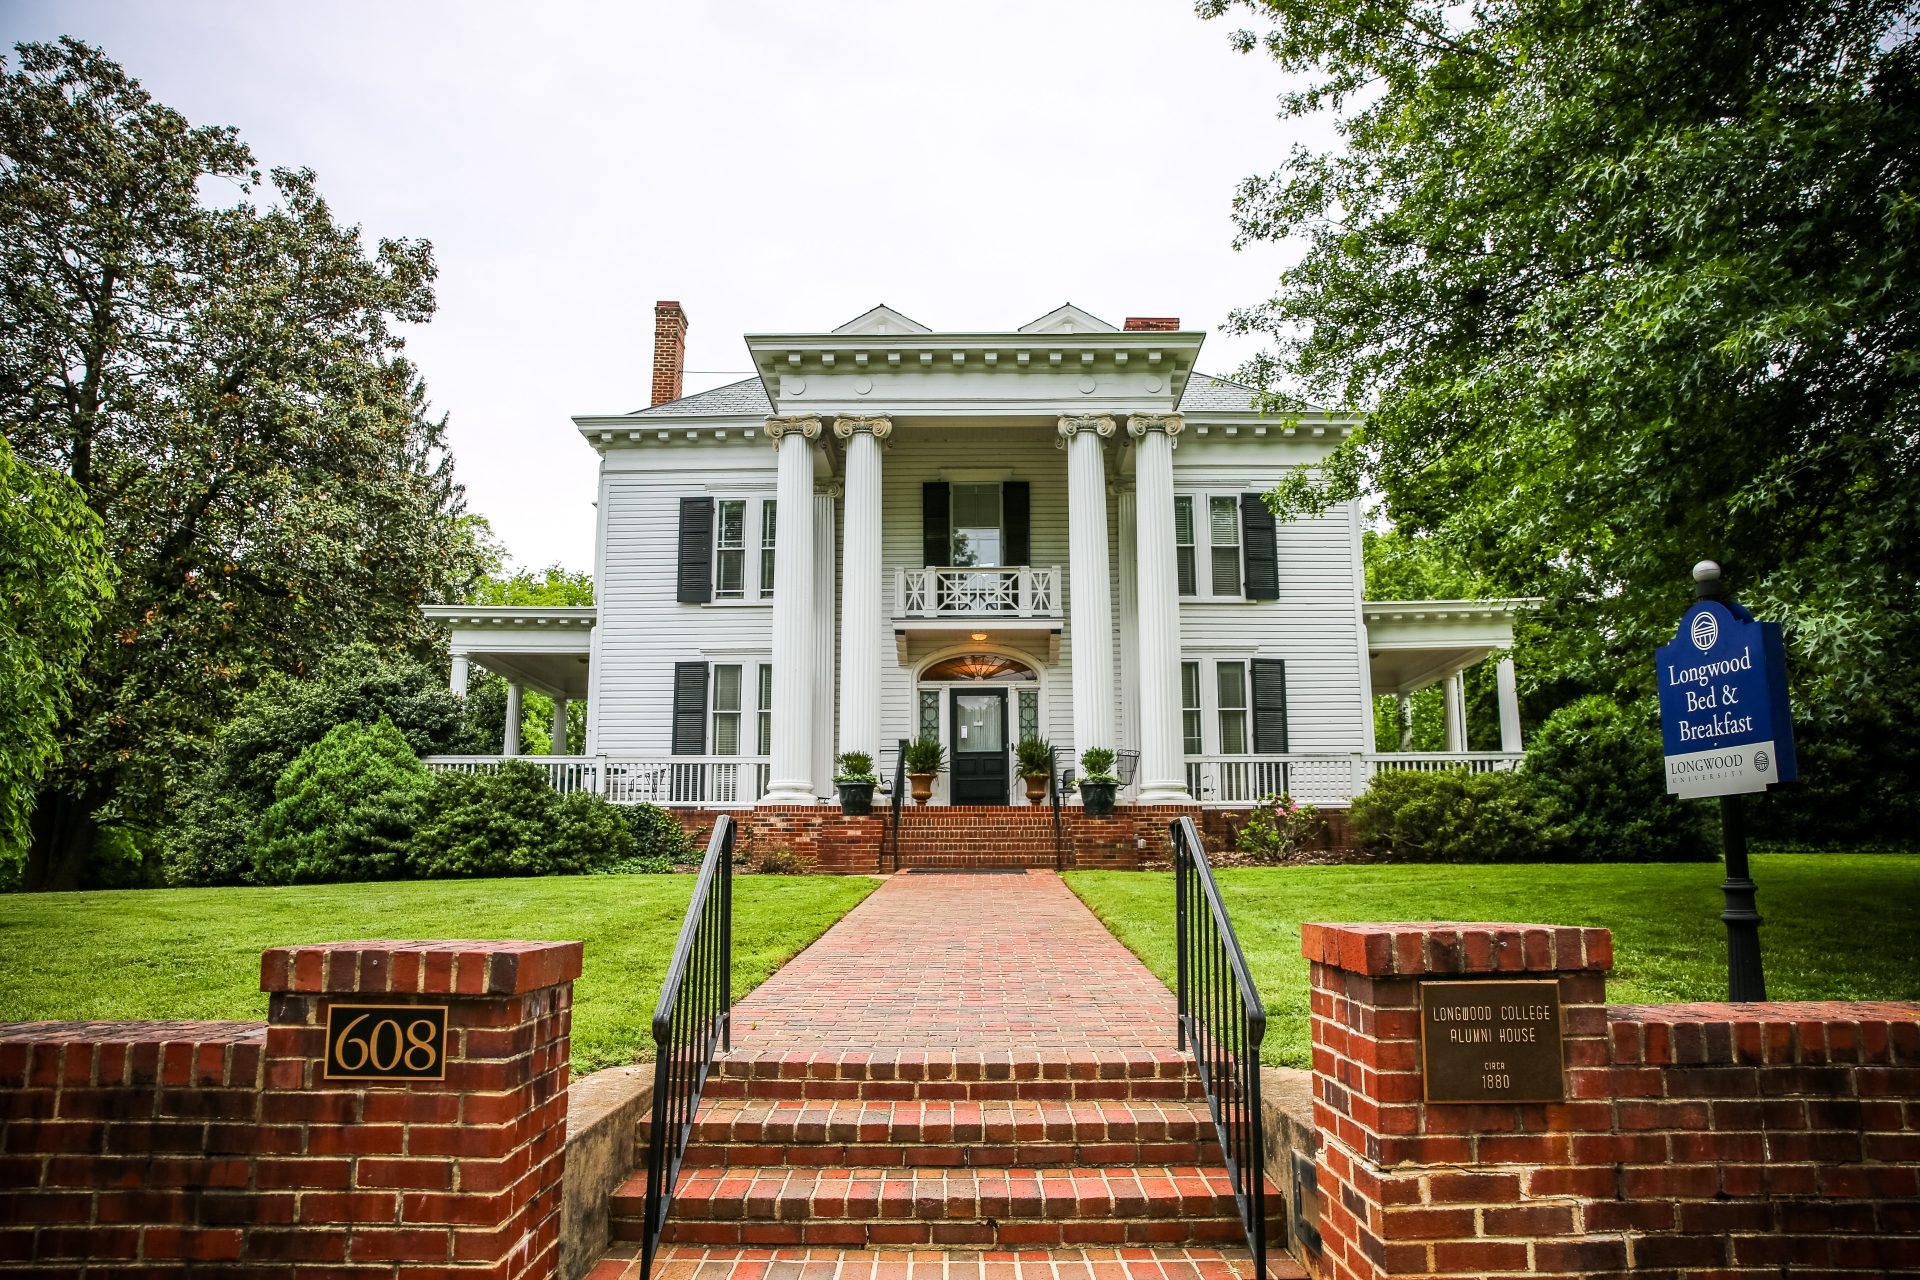 05 Longwood Bed and Breakfast